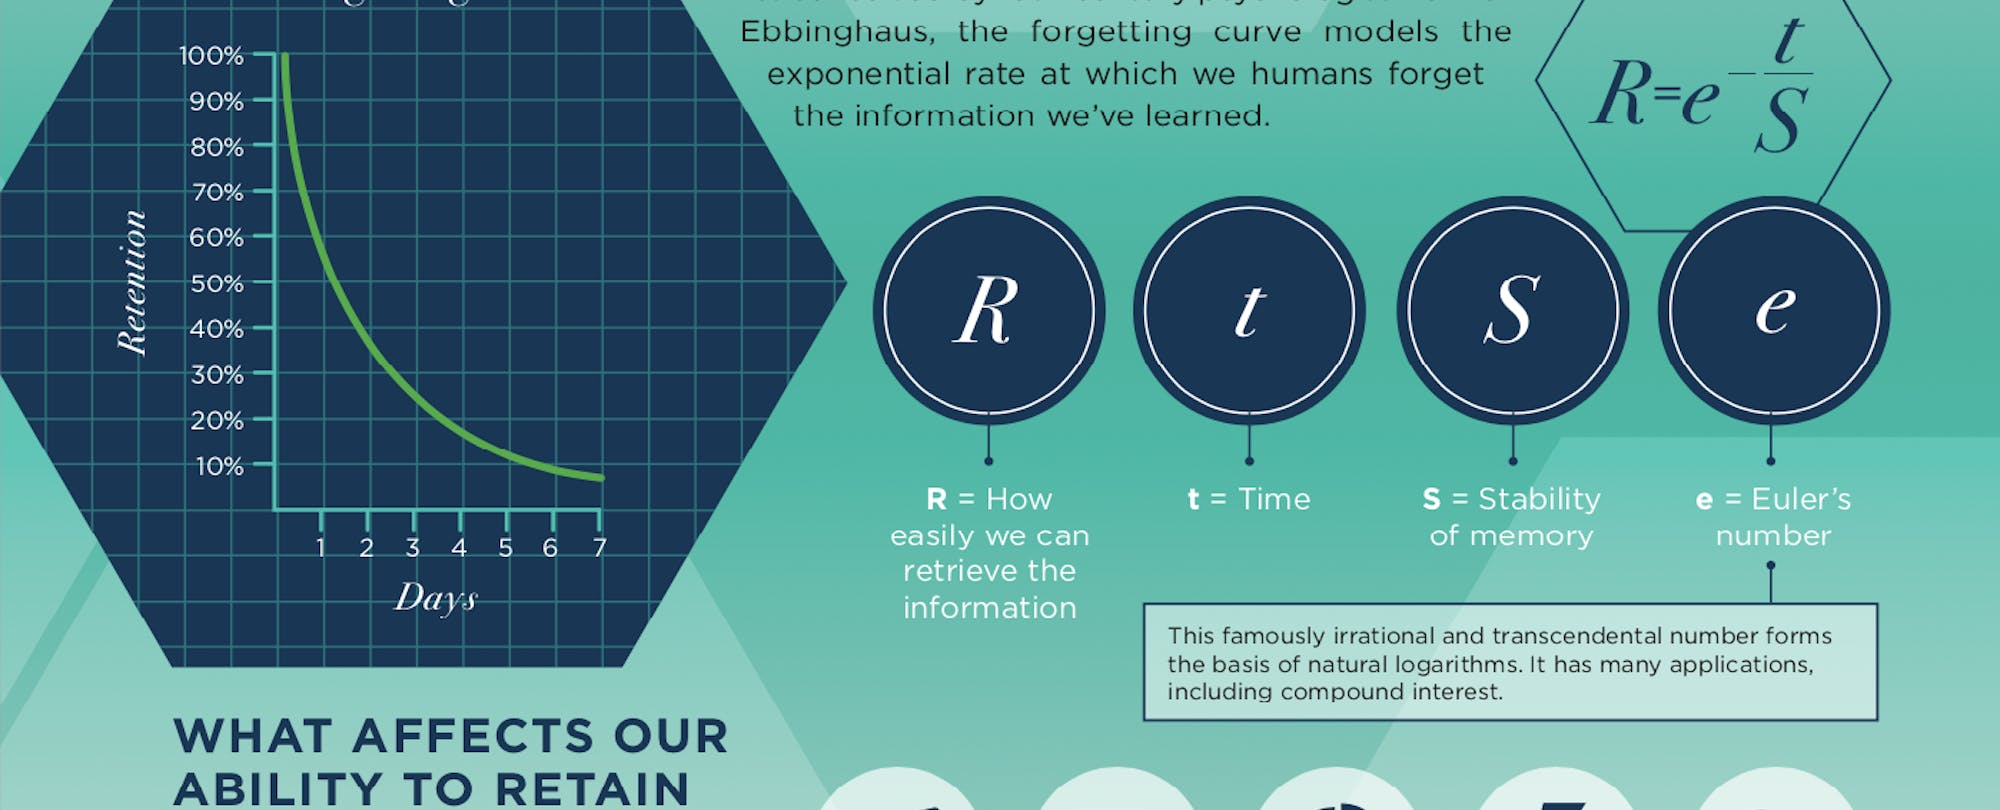 8 Great Ways to Enhance Retention [Infographic]